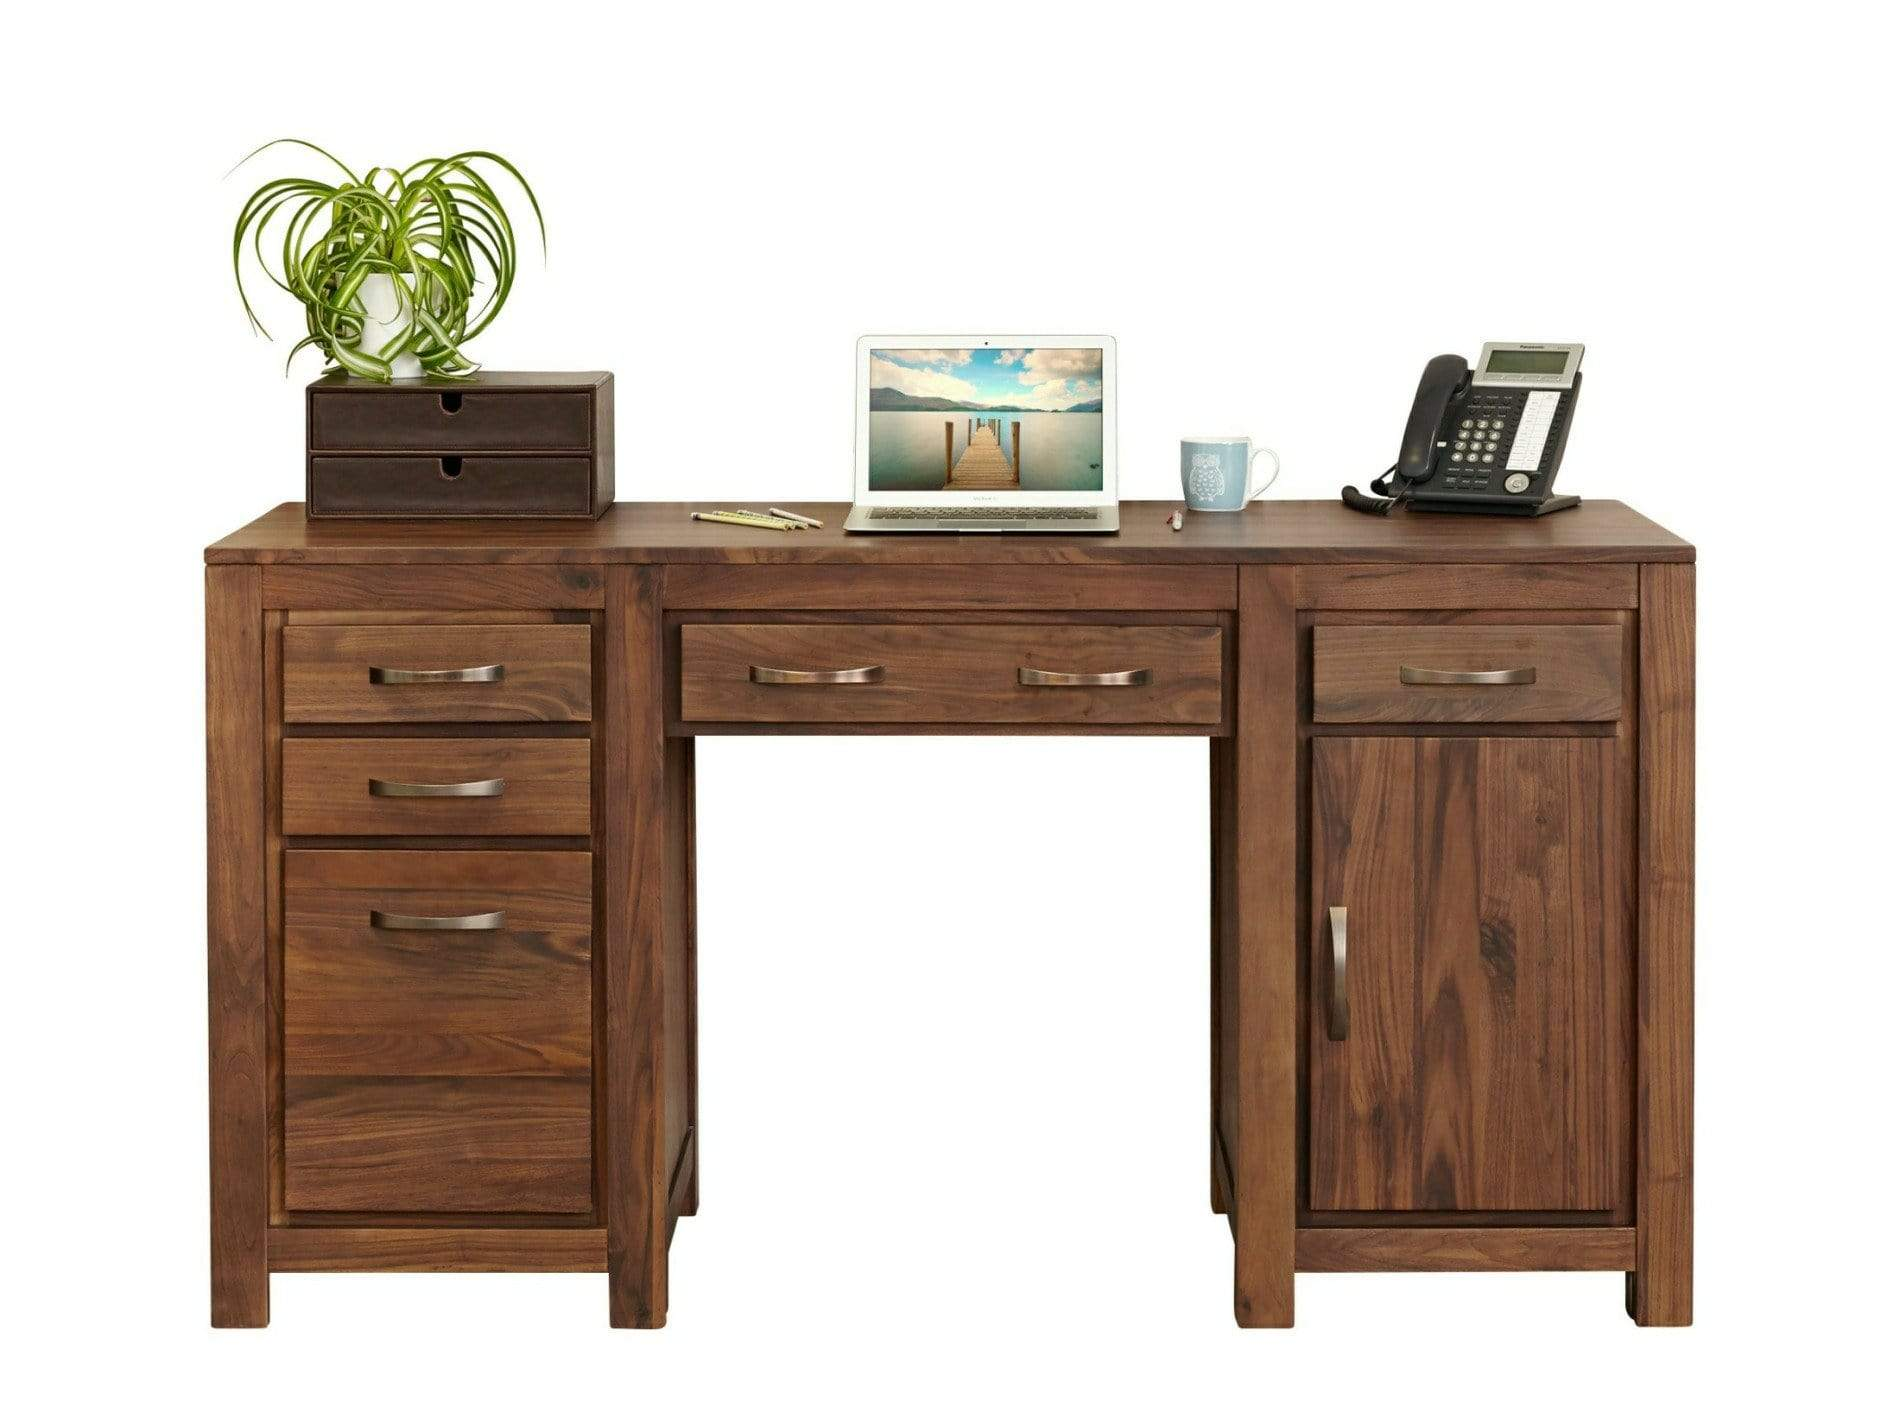 Orsina large walnut desk with computer keyboard tray, drawers and cupboards